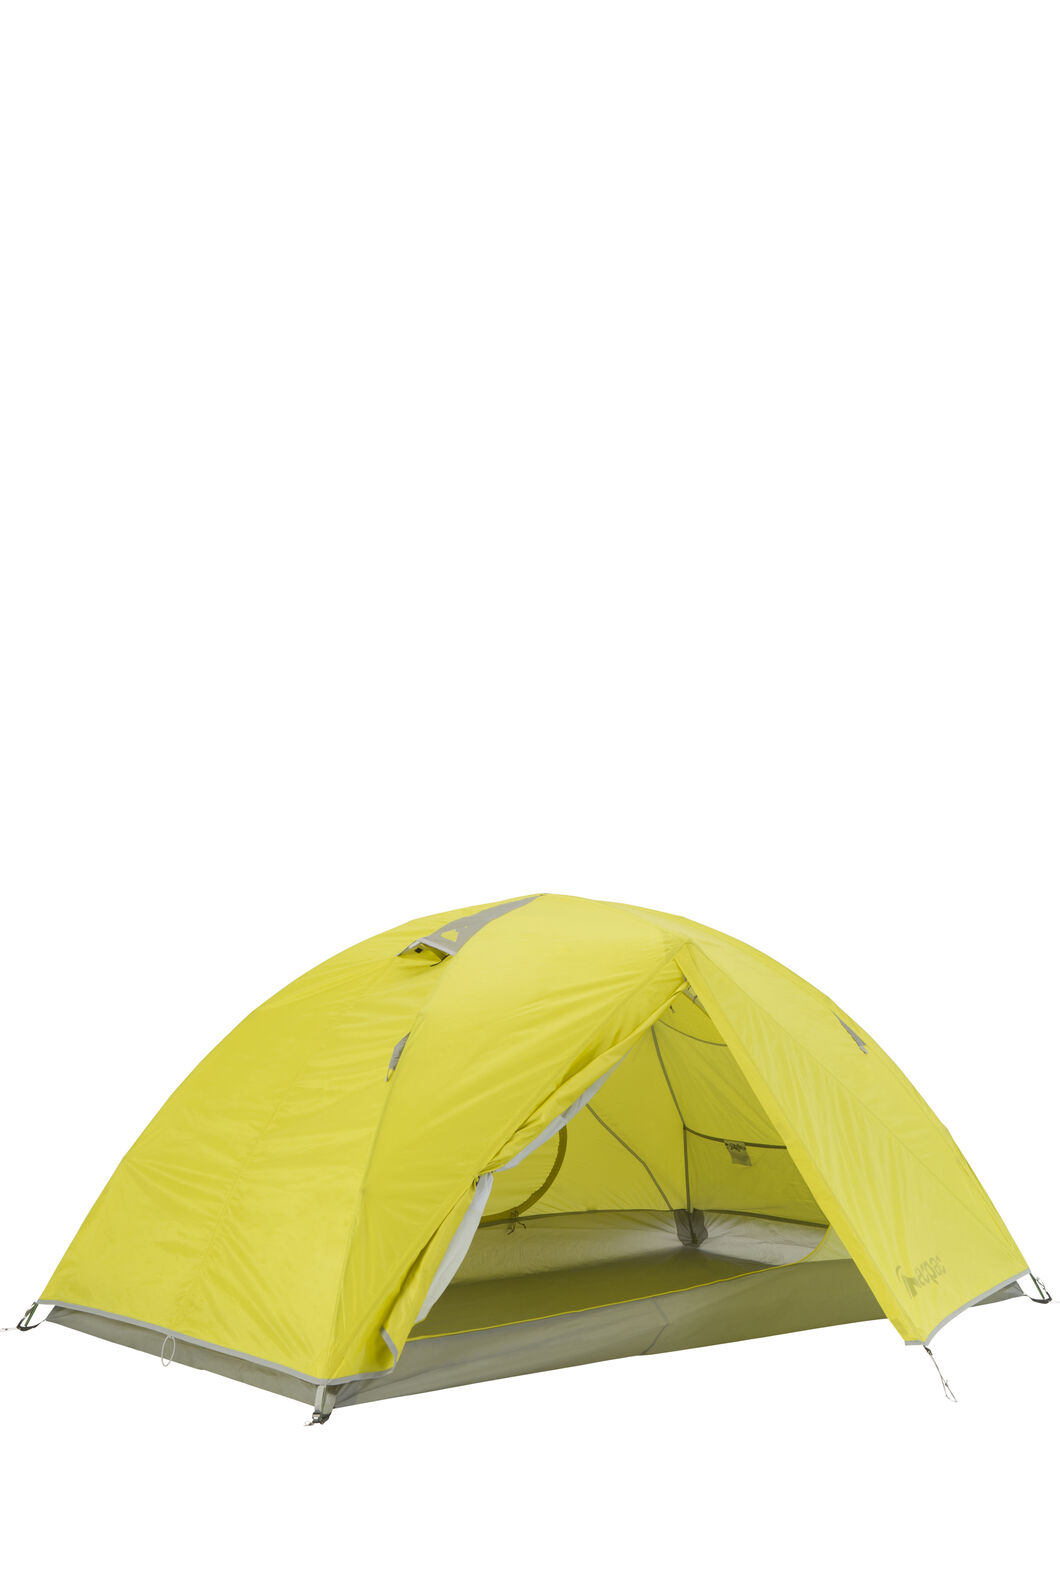 Macpac Duolight Hiking Tent, Citronelle, hi-res